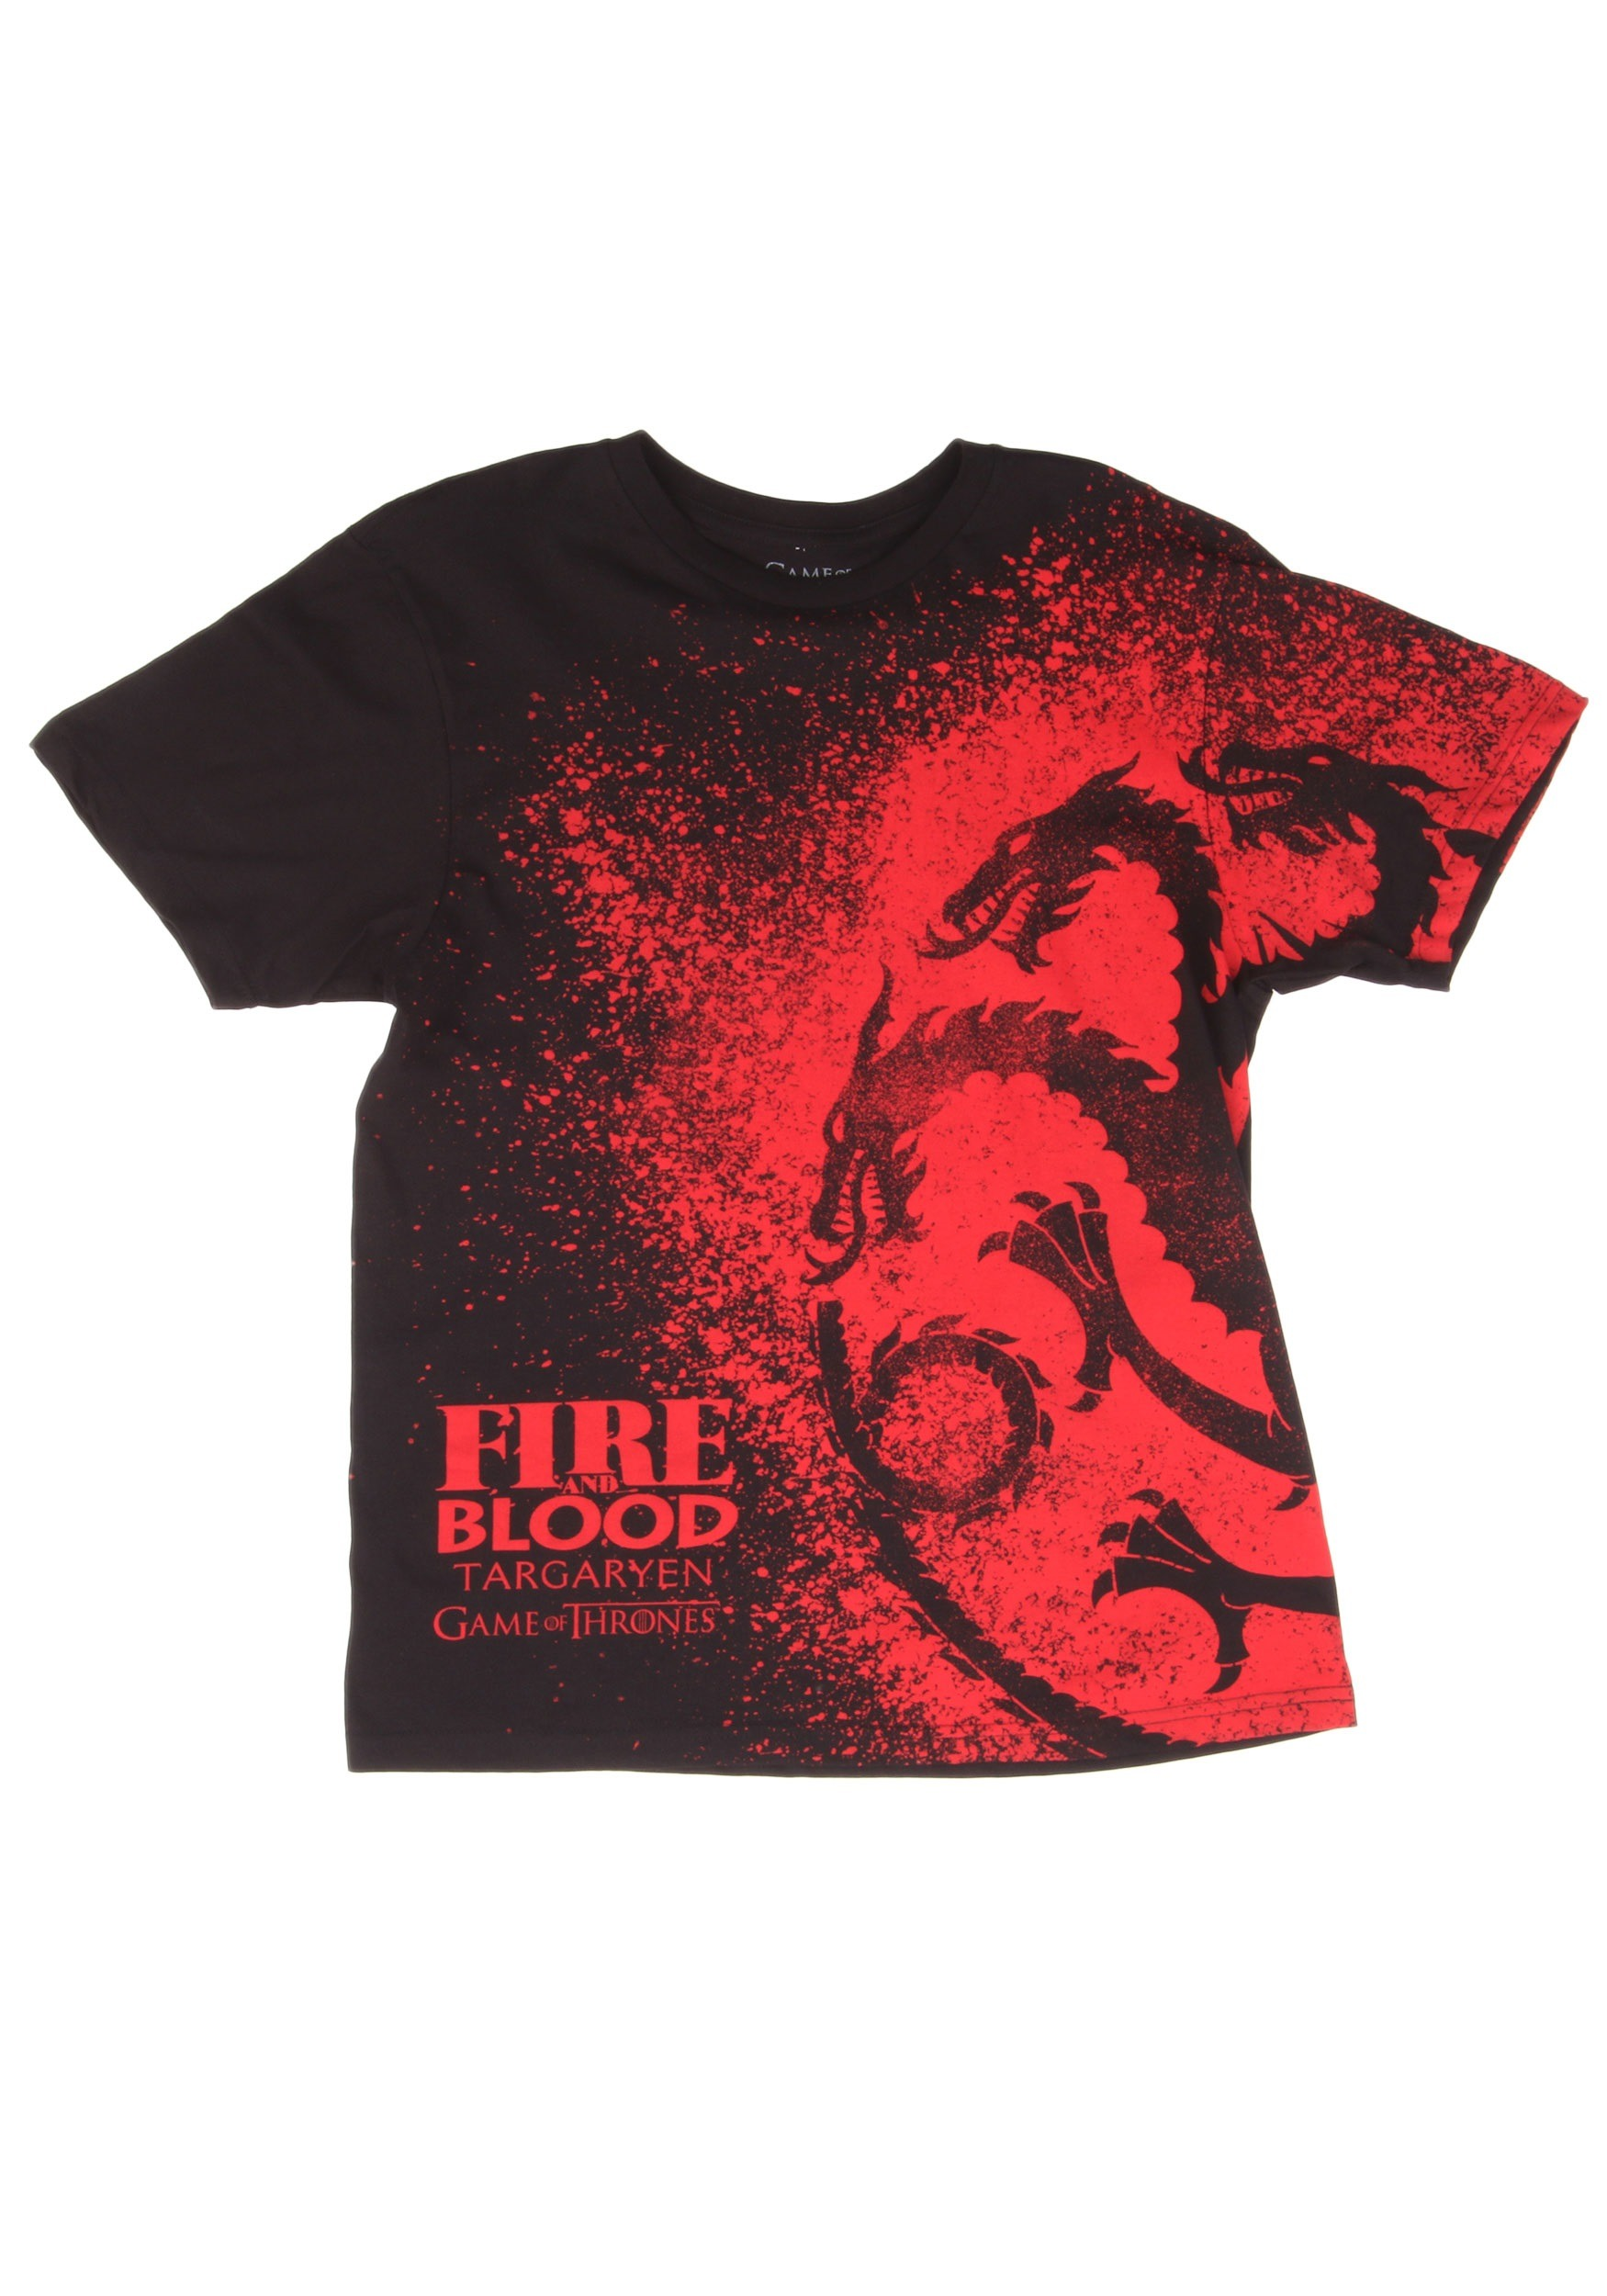 game of thrones fire blood t shirt for men. Black Bedroom Furniture Sets. Home Design Ideas